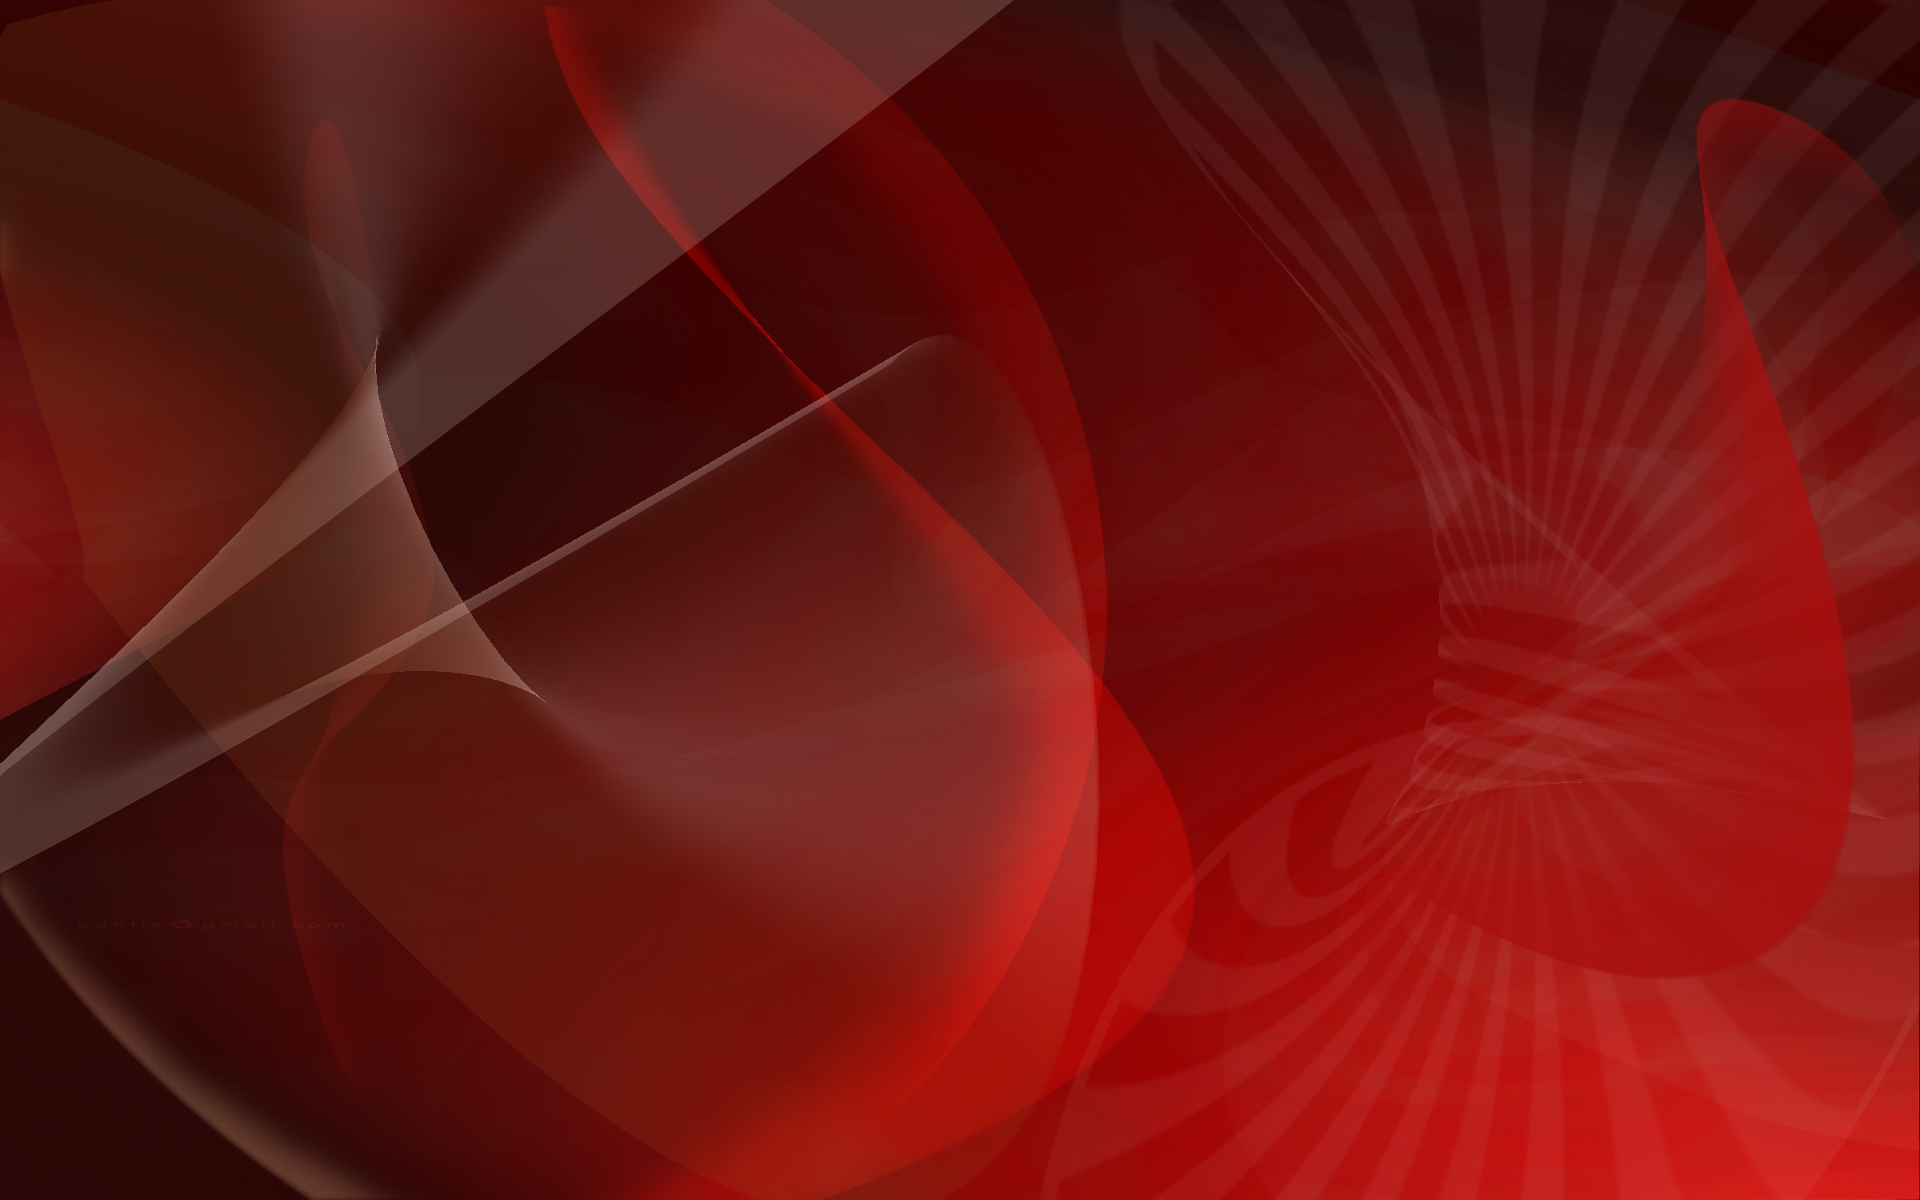 Red Abstract wallpaper   688764 1920x1200